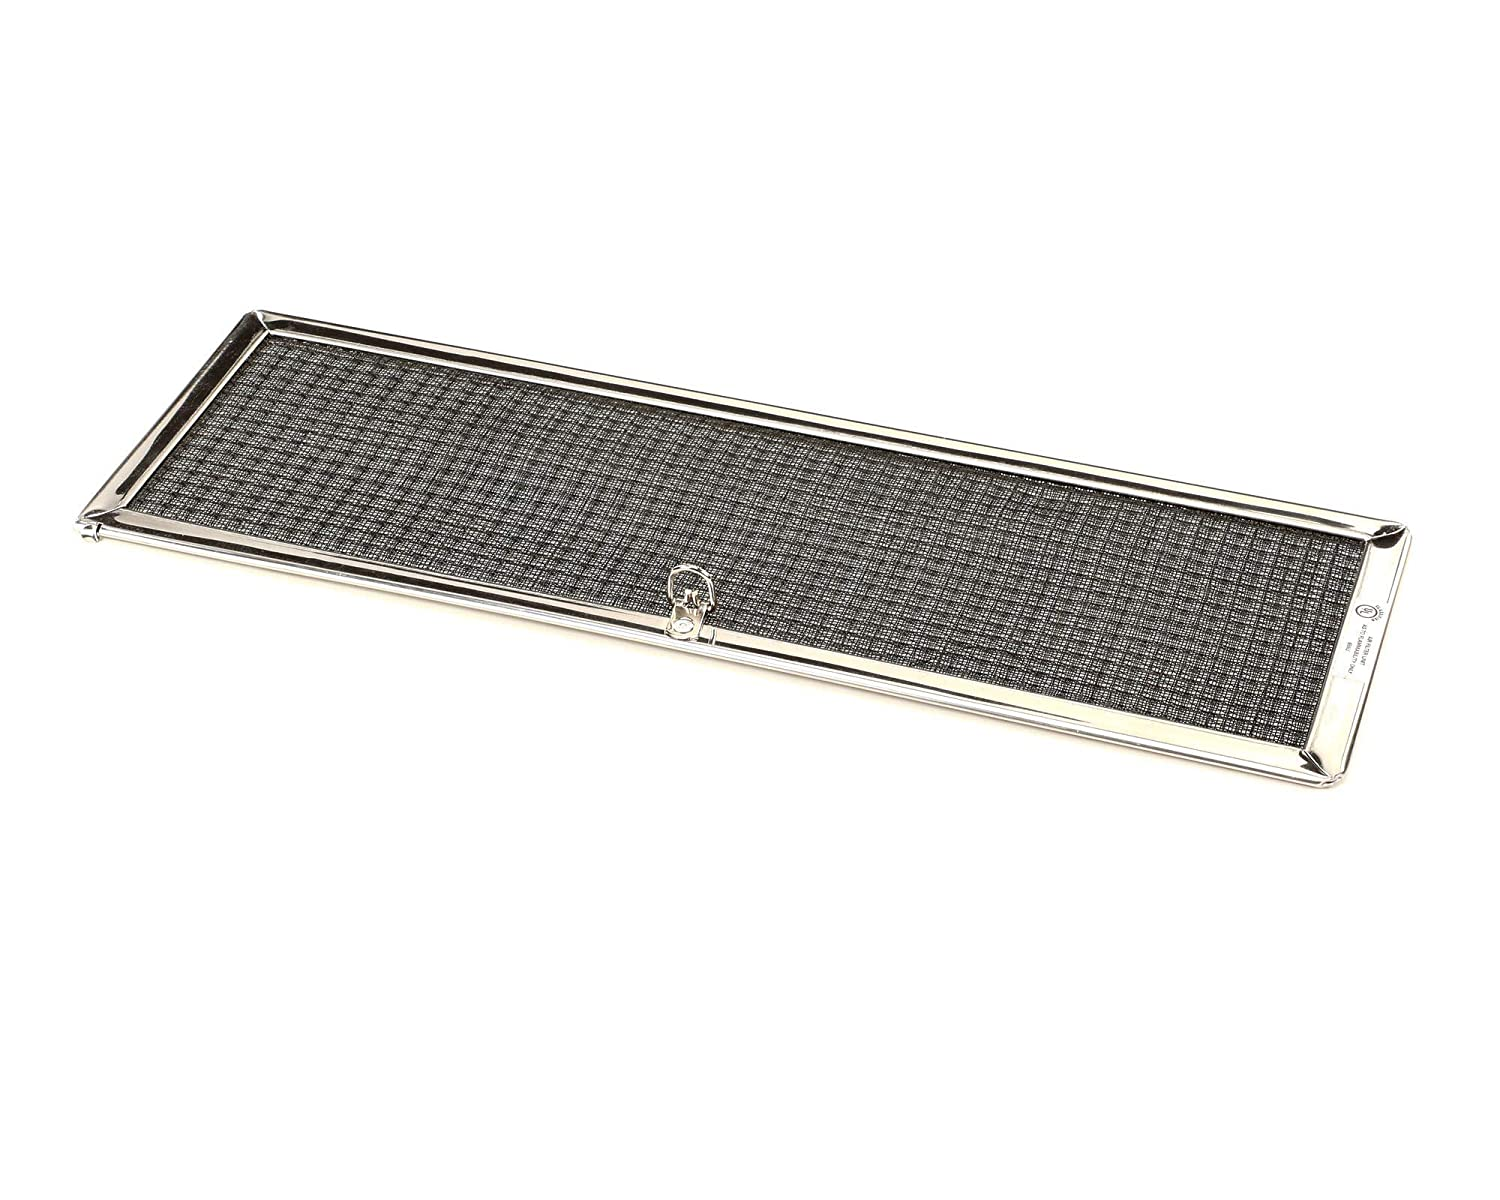 Turbochef sale HHD-8422 Air Double Ranking TOP19 Filter and Batch